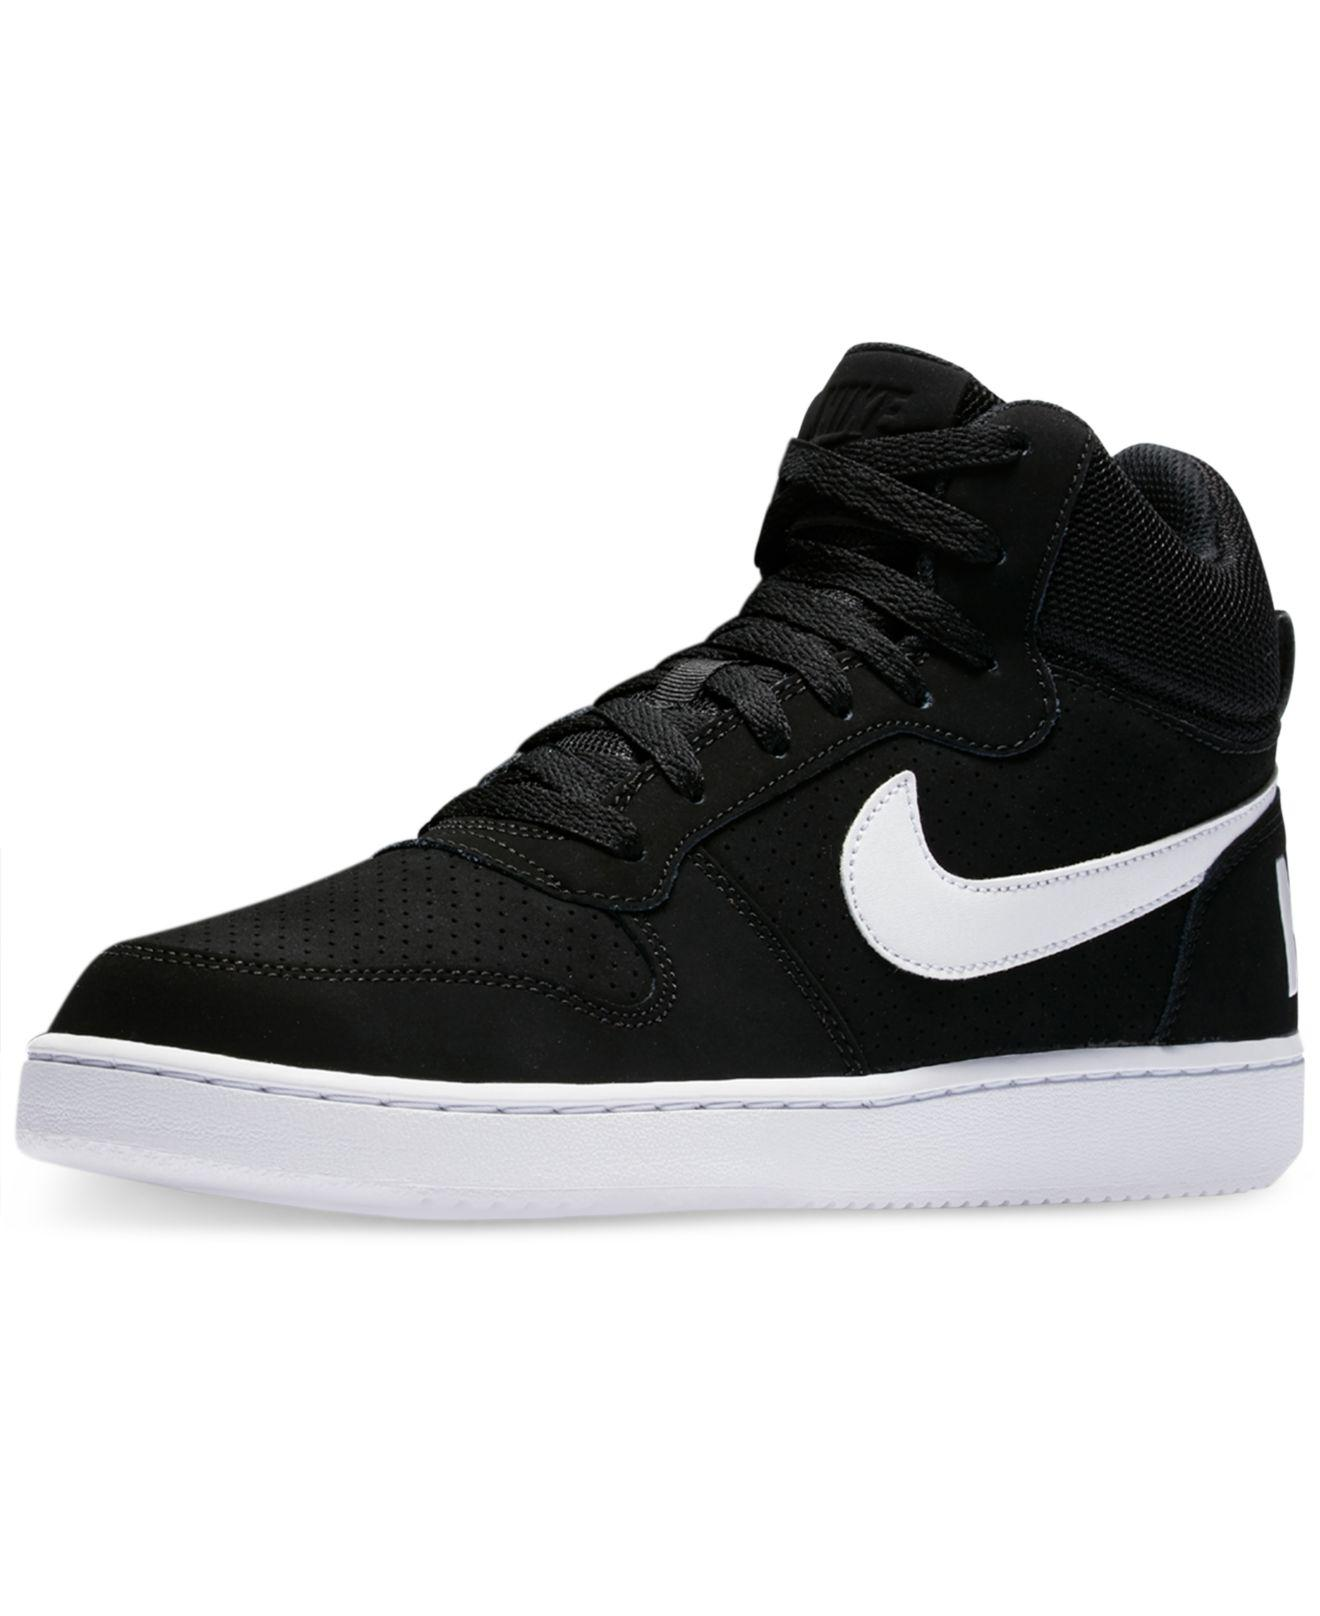 Nike - Black Recreation Mid Casual Sneakers From Finish Line for Men - Lyst.  View Fullscreen